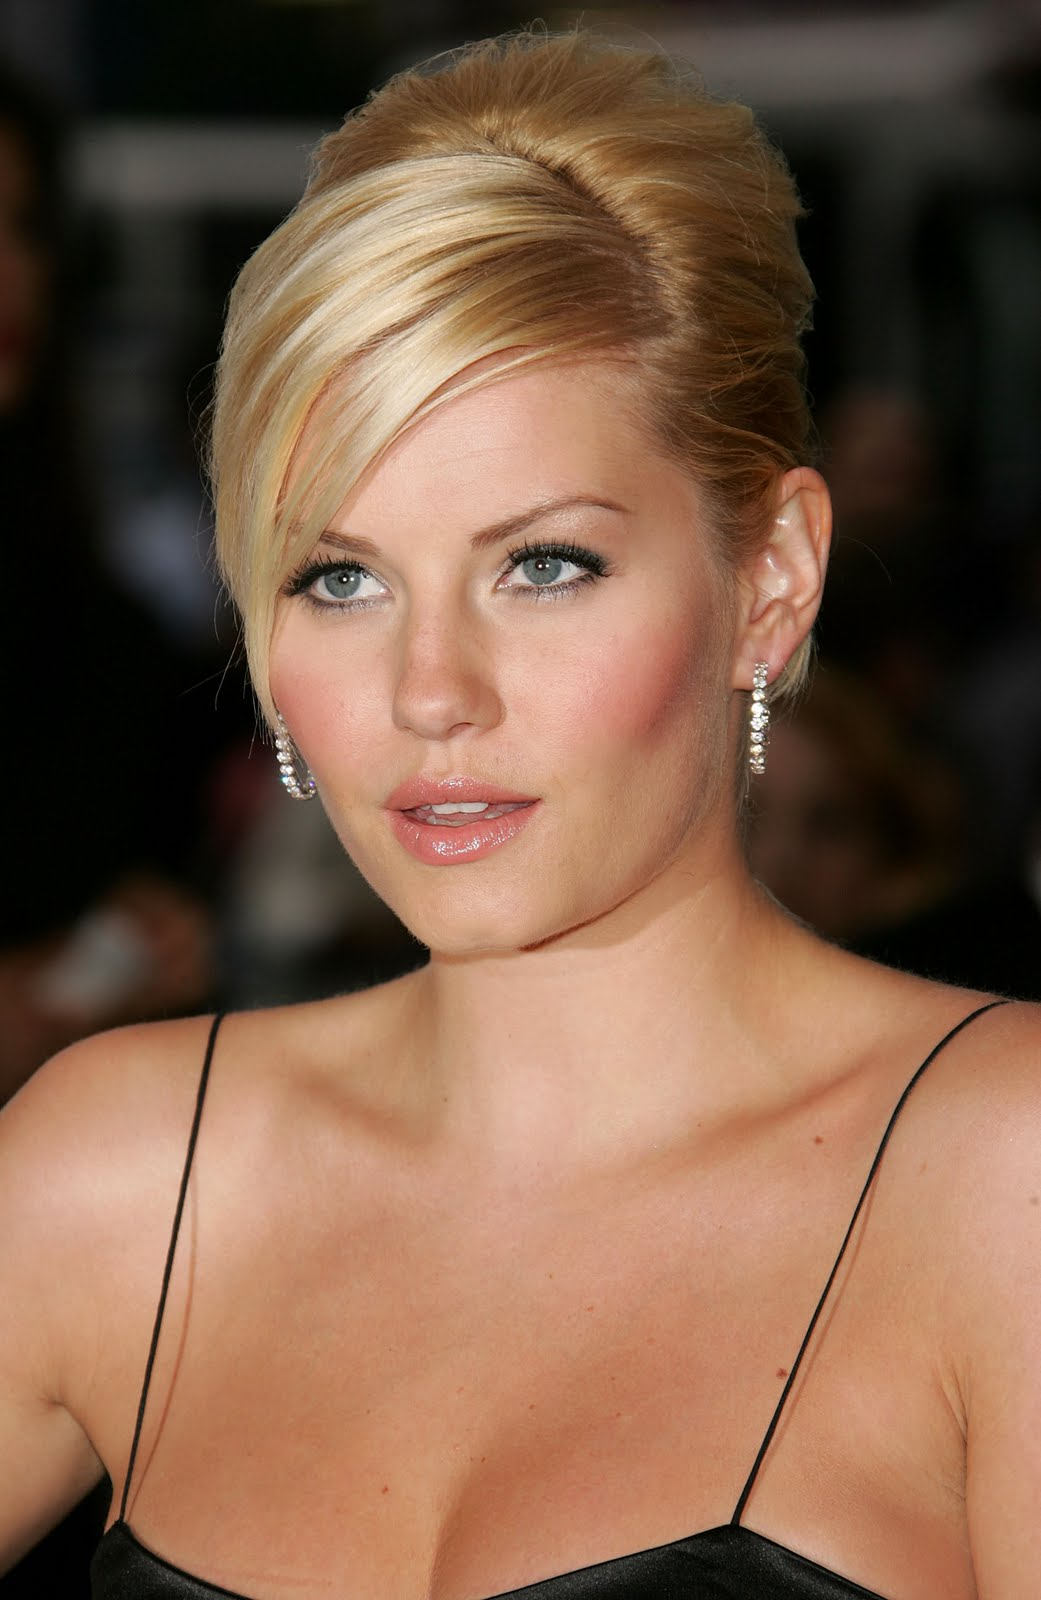 Elisha Cuthbert Latest Photos: Elisha Cuthbert Bra Size, Age, Weight, Height